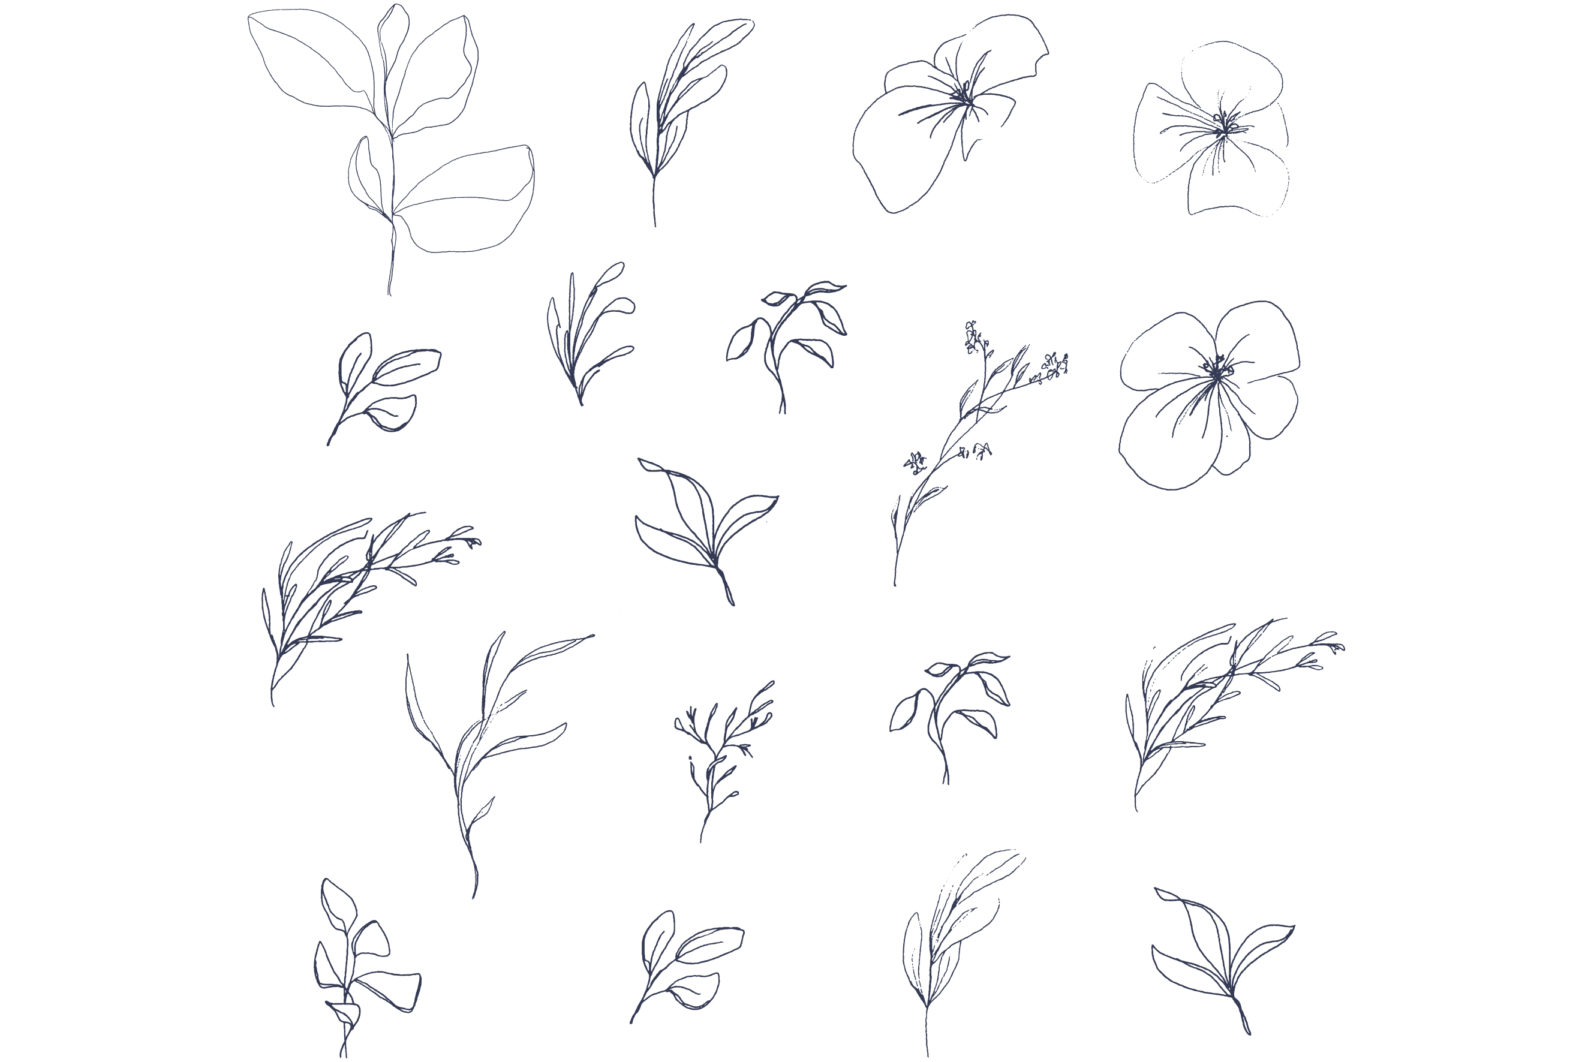 Floral pencil drawing one line art elements, Vector - etsy pencil preview5 -